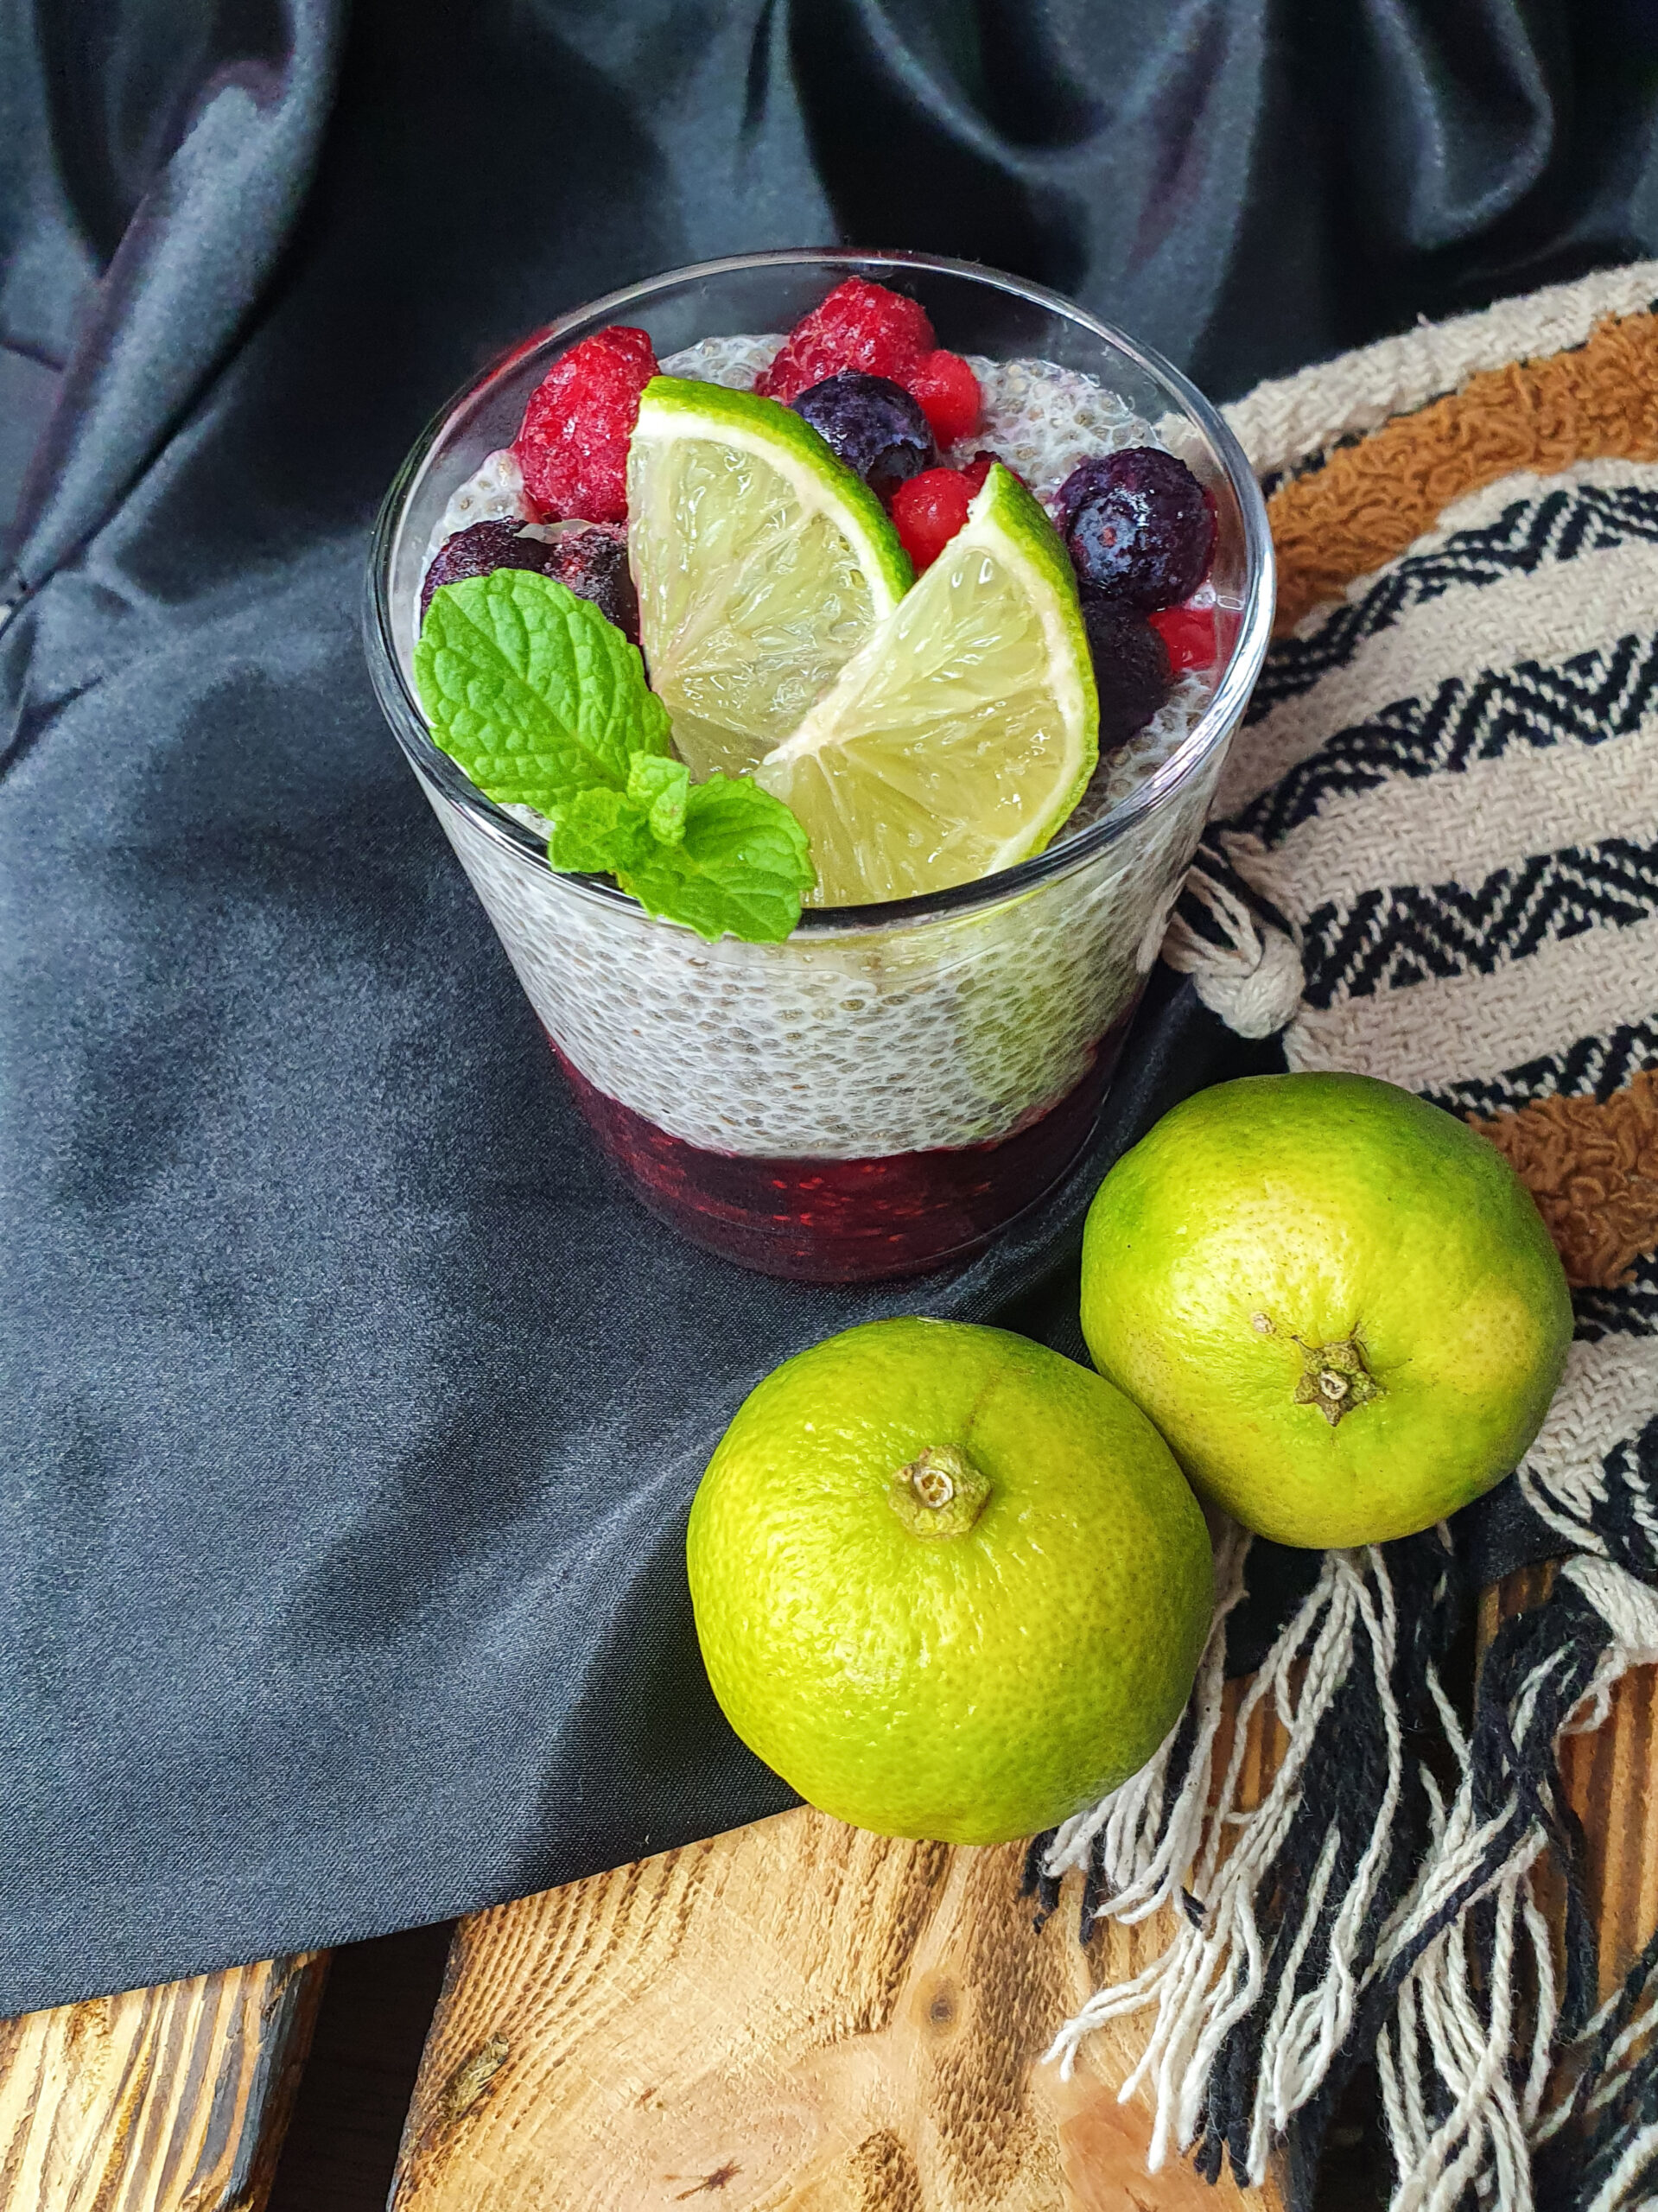 Waldbeer-Lime-Chiapudding